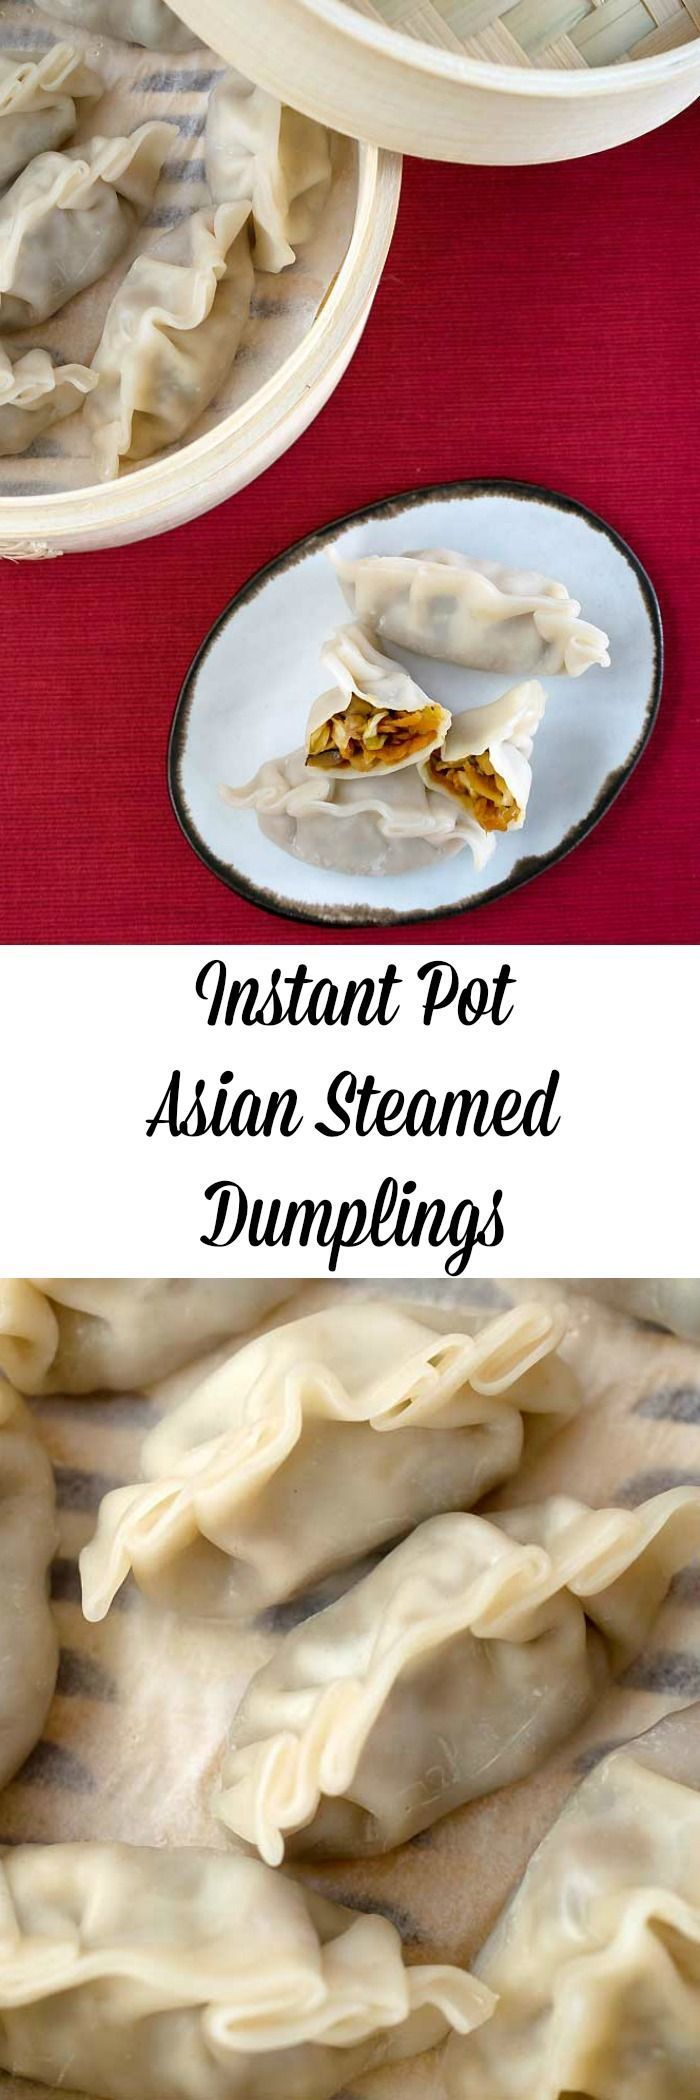 A recipe to make vegan asian steamed dumplings in your new Instant Pot! It's from my new cookbook, The Ultimate Vegan Cookbook for Your Instant Pot! More vegan Instant Pot recipes to come!